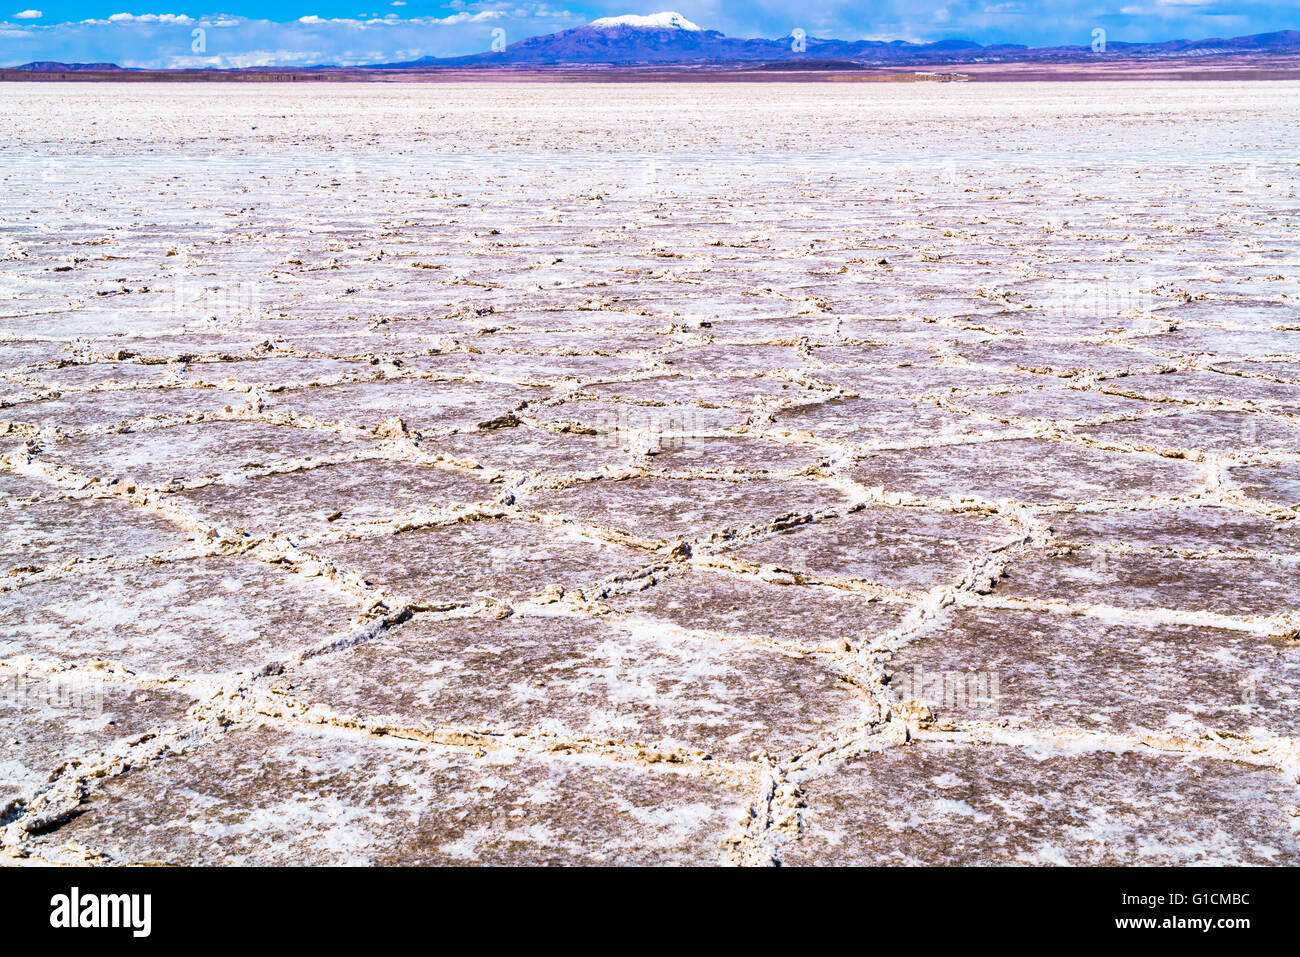 View of Uyuni Salt Flat, the world largest salt flats in Uyuni, Bolivia - Stock Image